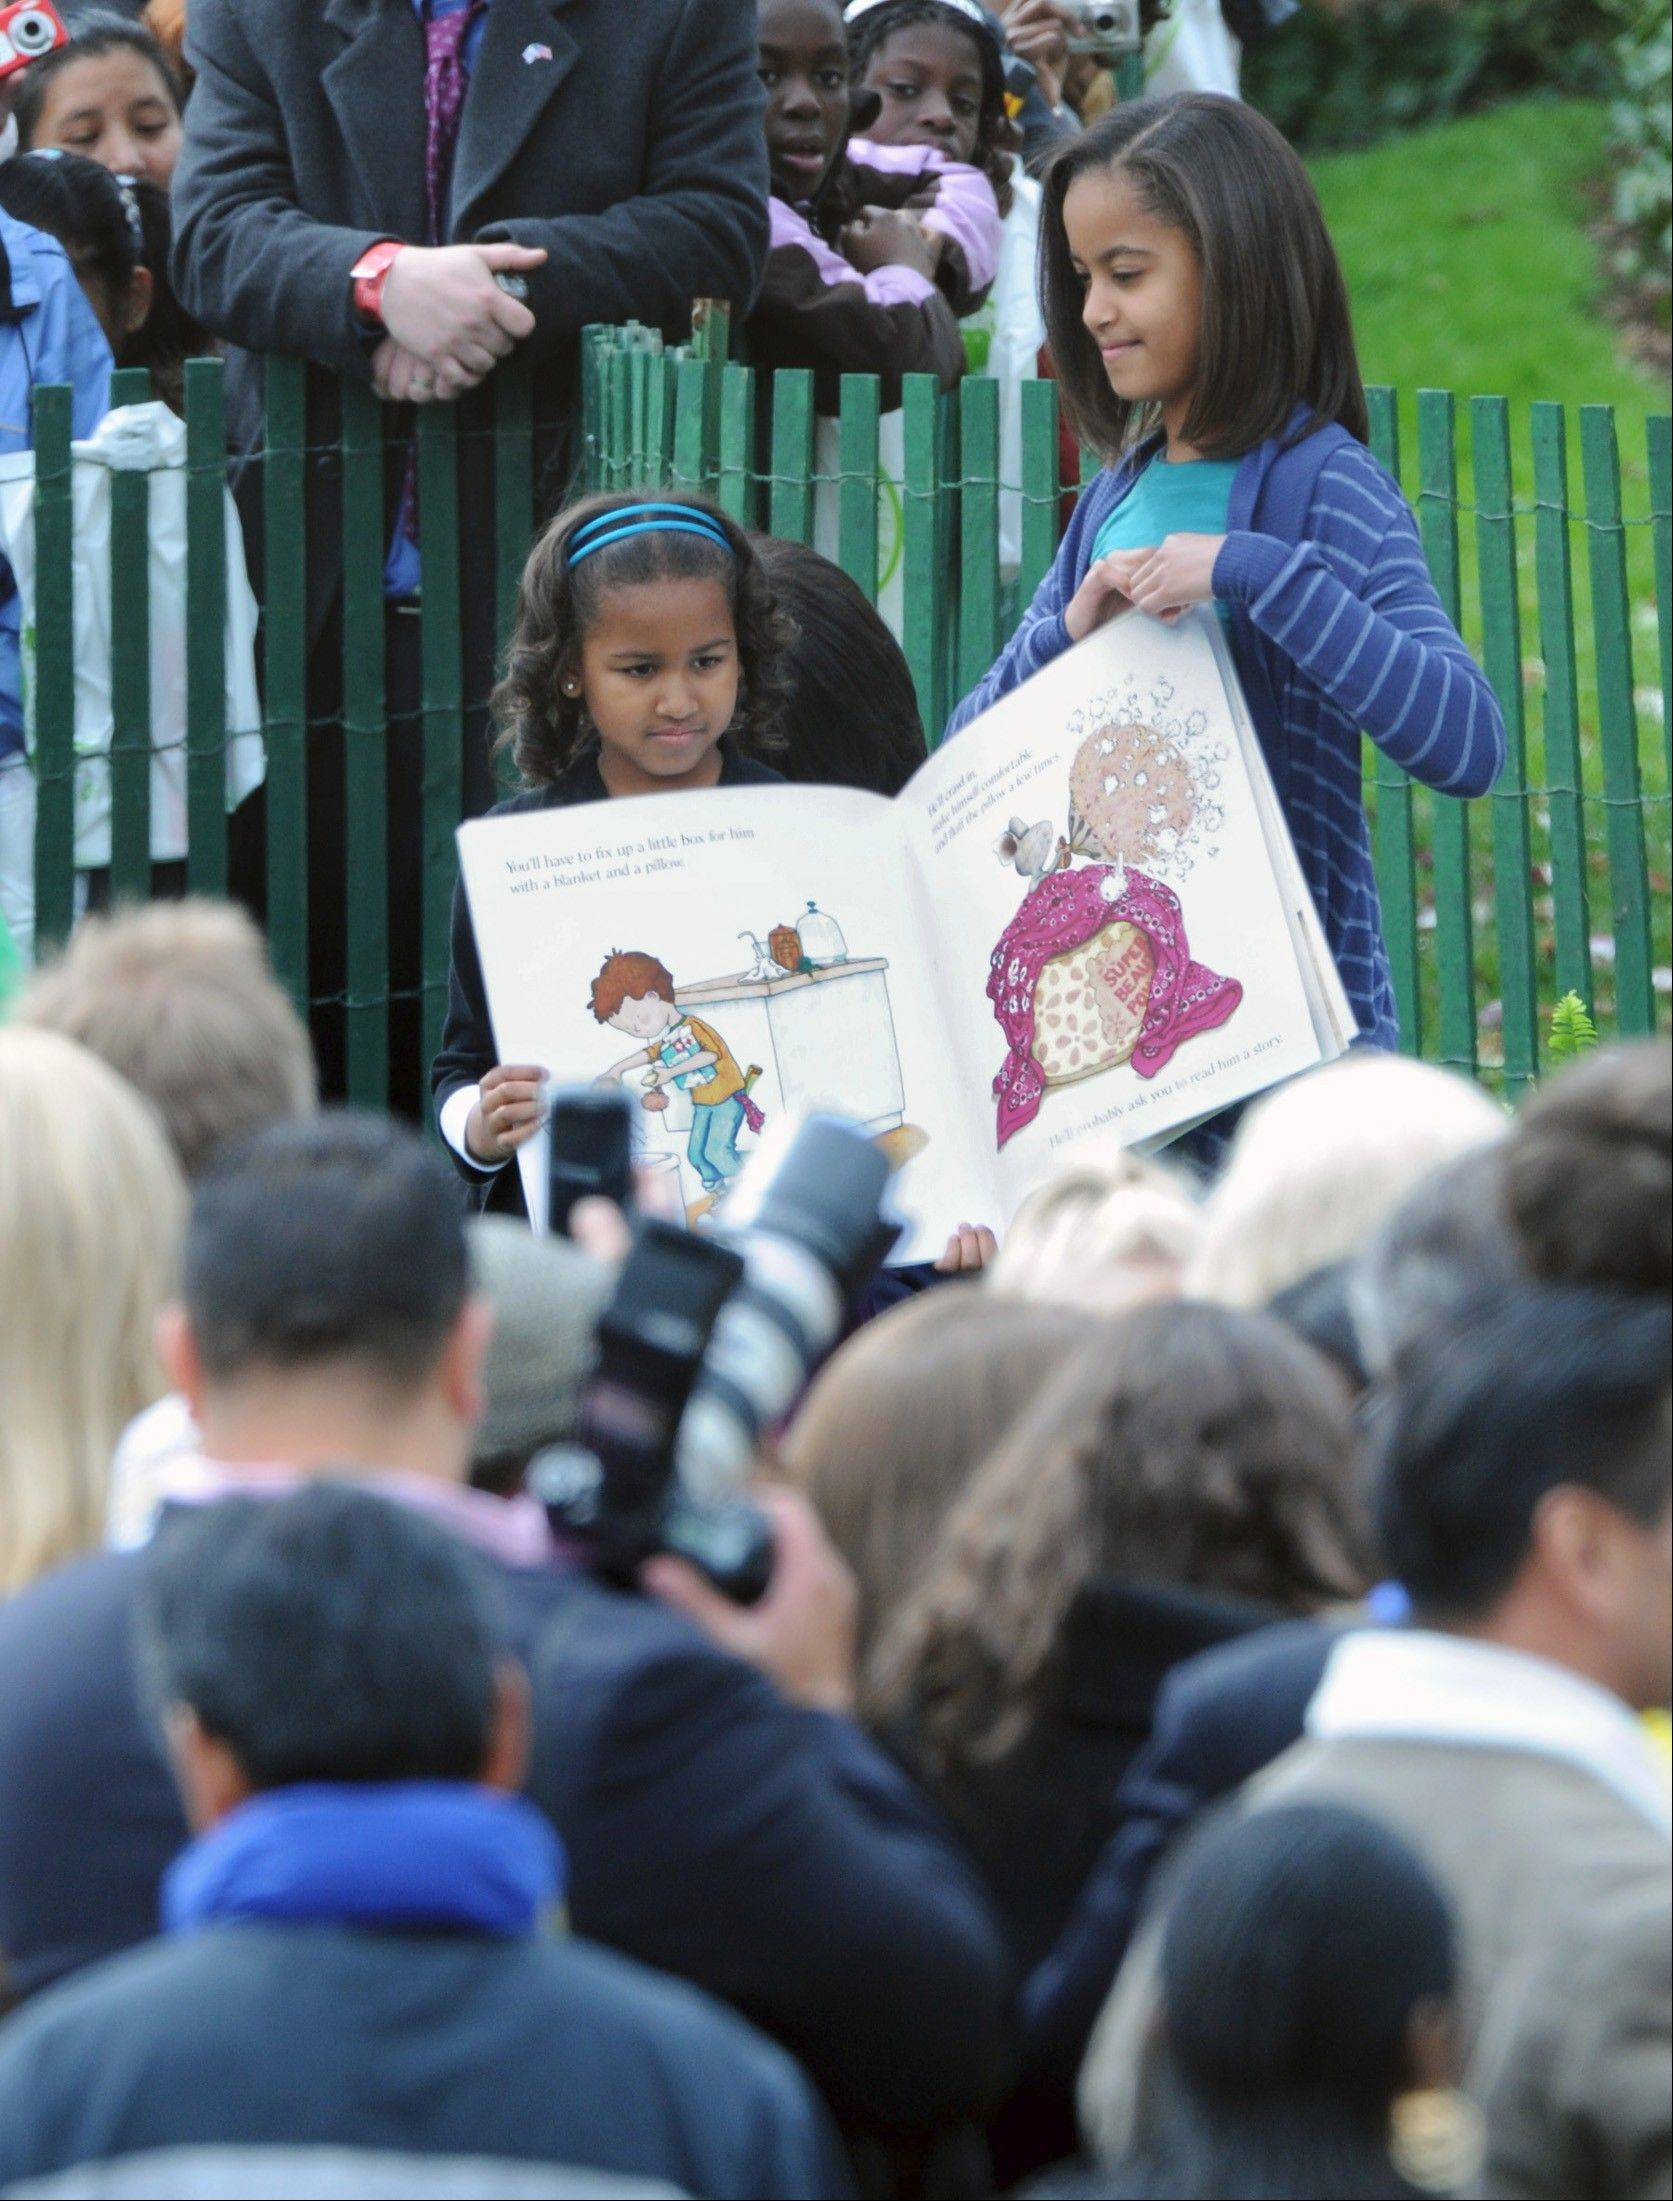 President Barack Obama and family host thousands of kids of all ages for an annual Easter Egg Roll at the White House in 2009. Pictured, Sasha, left, and Malia Obama read to a group gathered on the South Lawn.